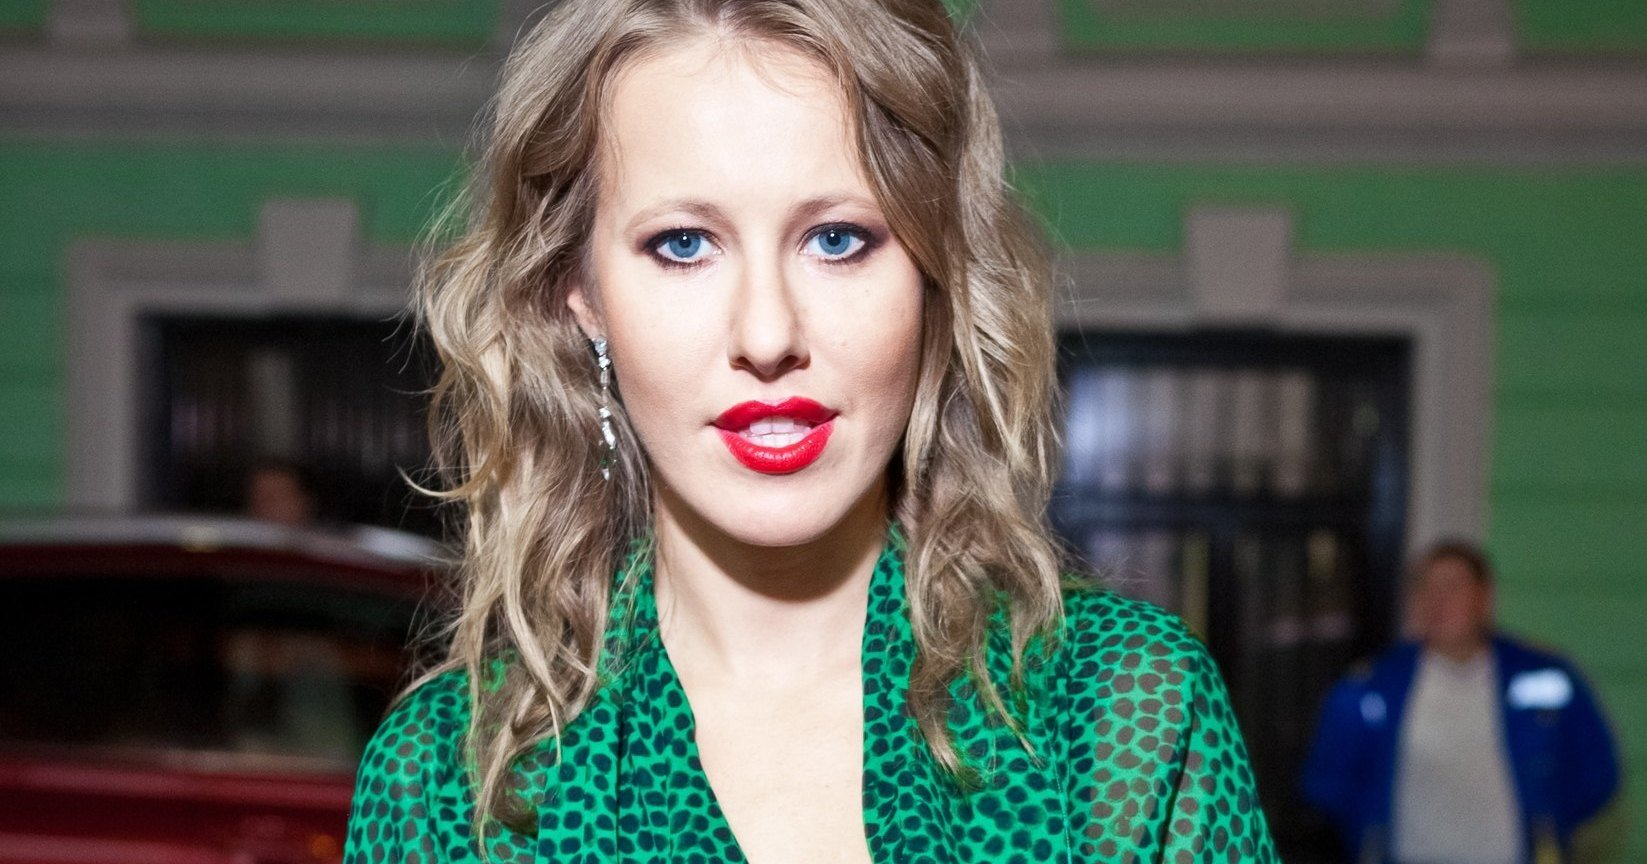 Samsung sues Ksenia Sobchak for the iPhone X